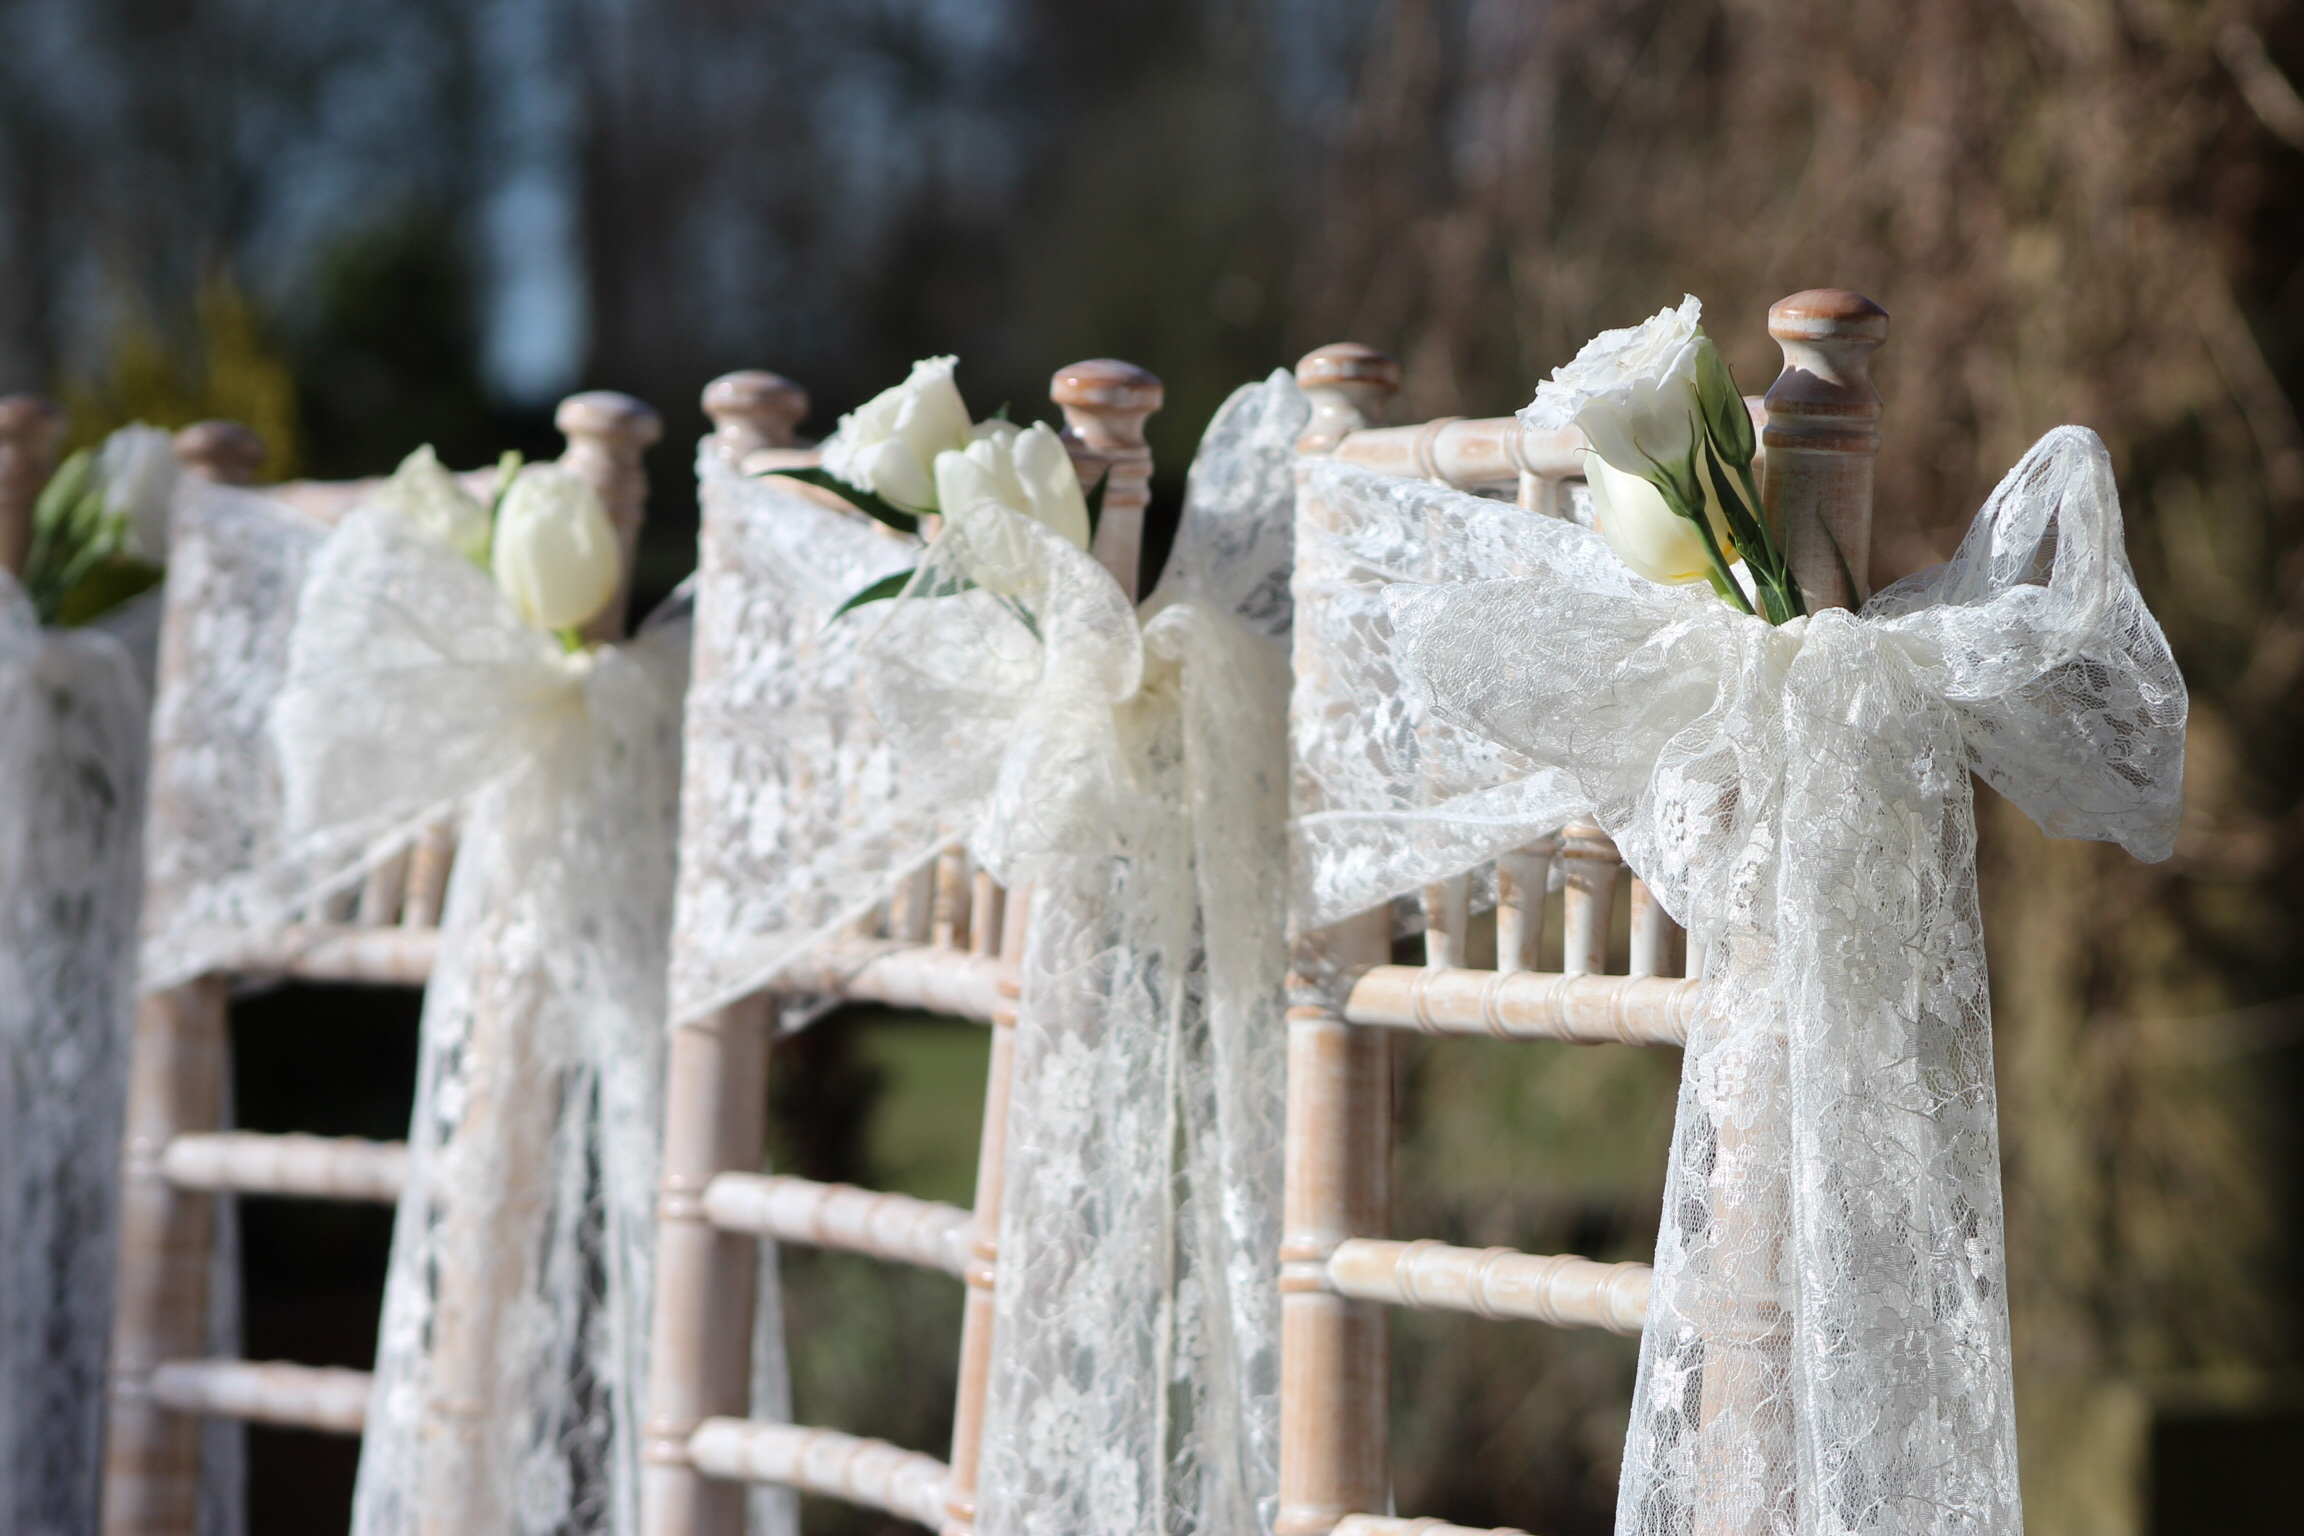 Kirkley Hall Wedding in Northumberland with Lace Chair